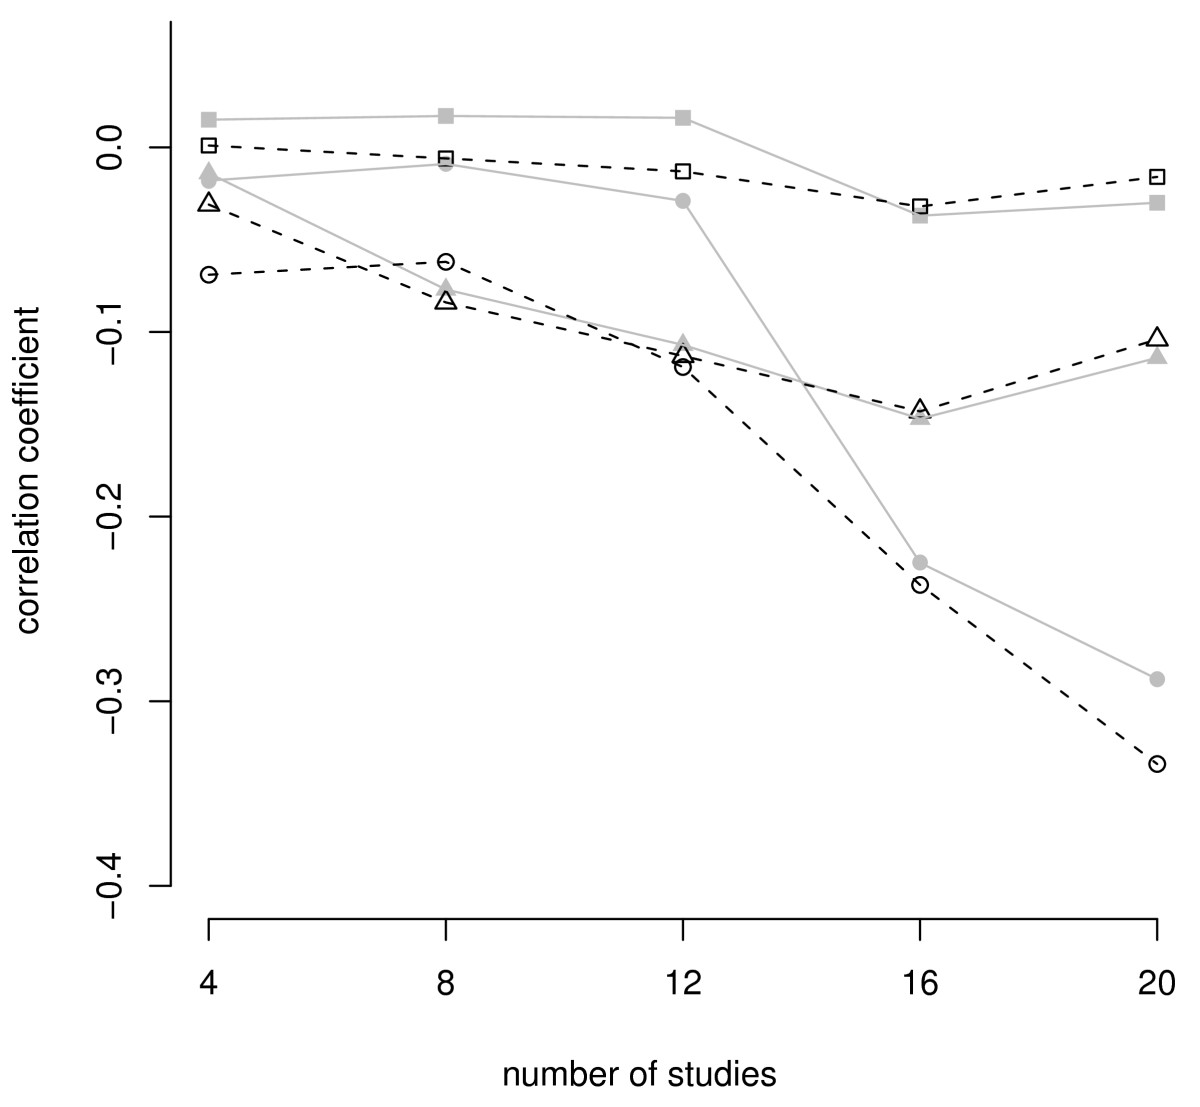 http://static-content.springer.com/image/art%3A10.1186%2F1471-2164-12-55/MediaObjects/12864_2010_3194_Fig2_HTML.jpg